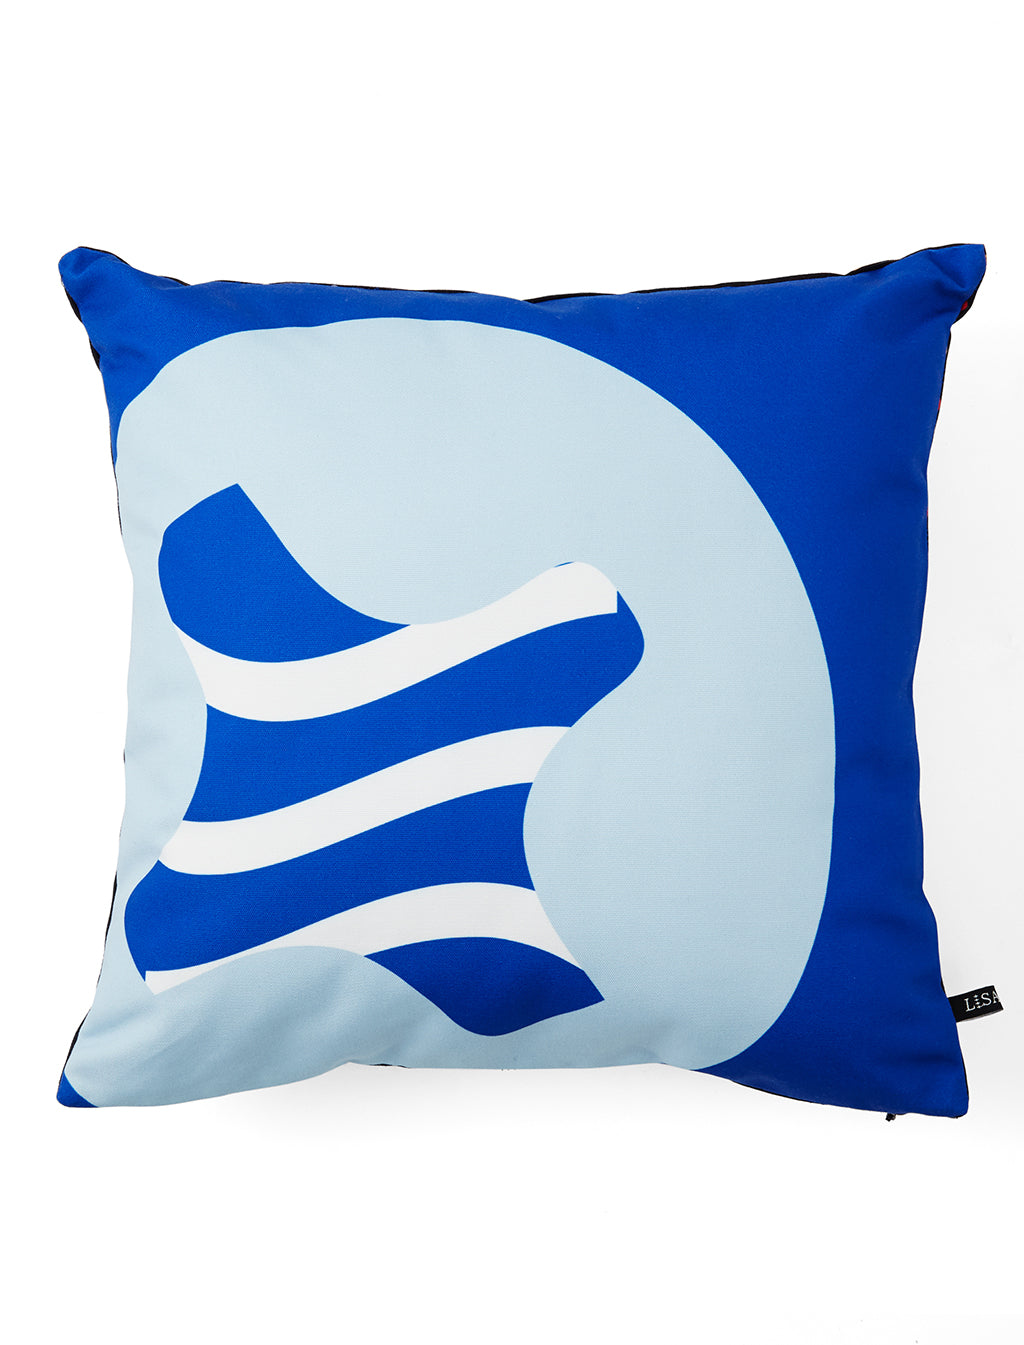 BLUE LISA KING X SIWILAI SCREWPRINT CUSHION